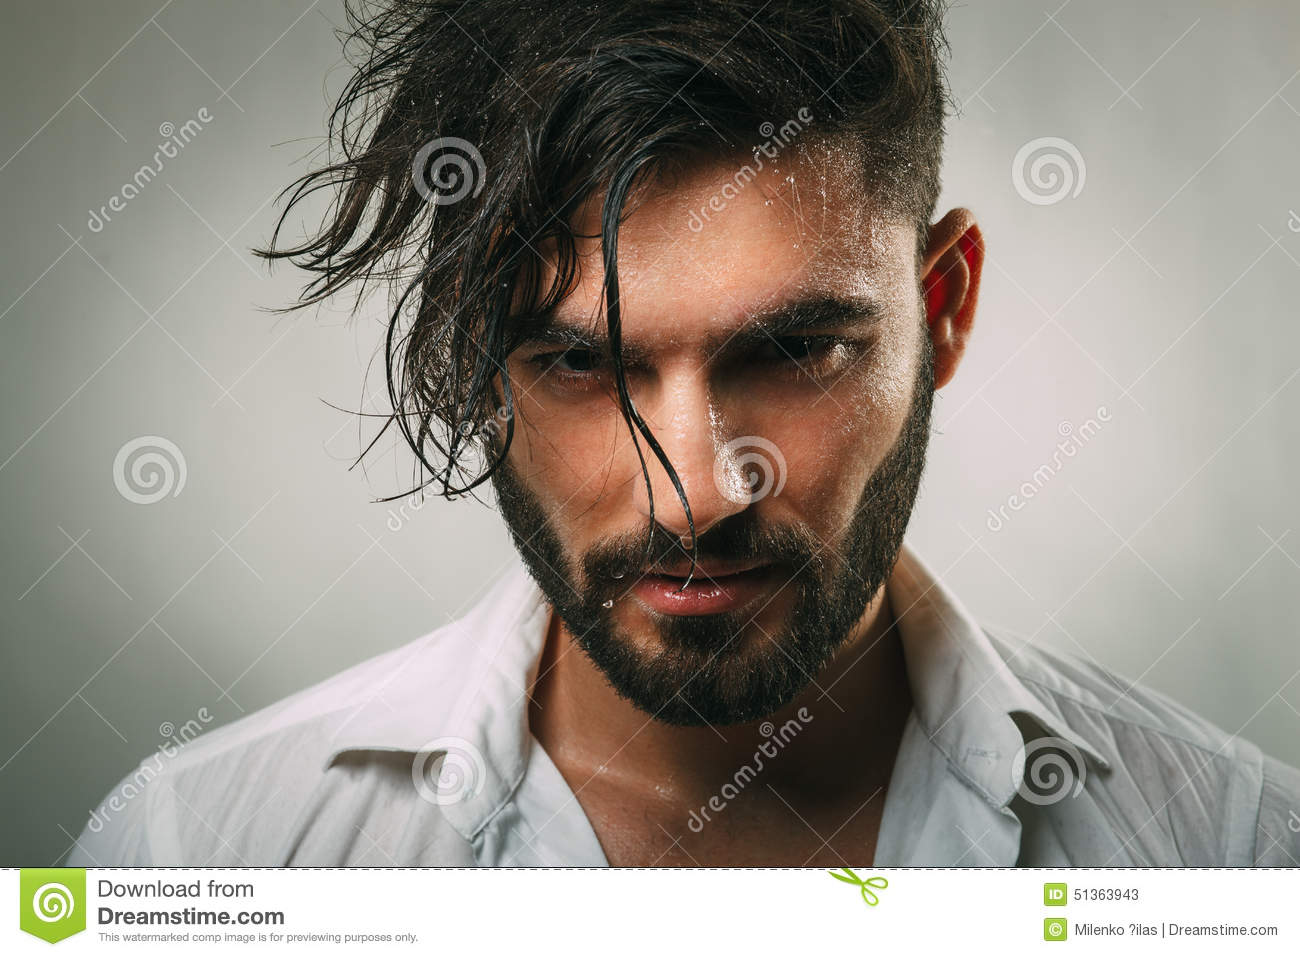 Man Beard Wet Portrait Attractive Stylish Young Guy Model